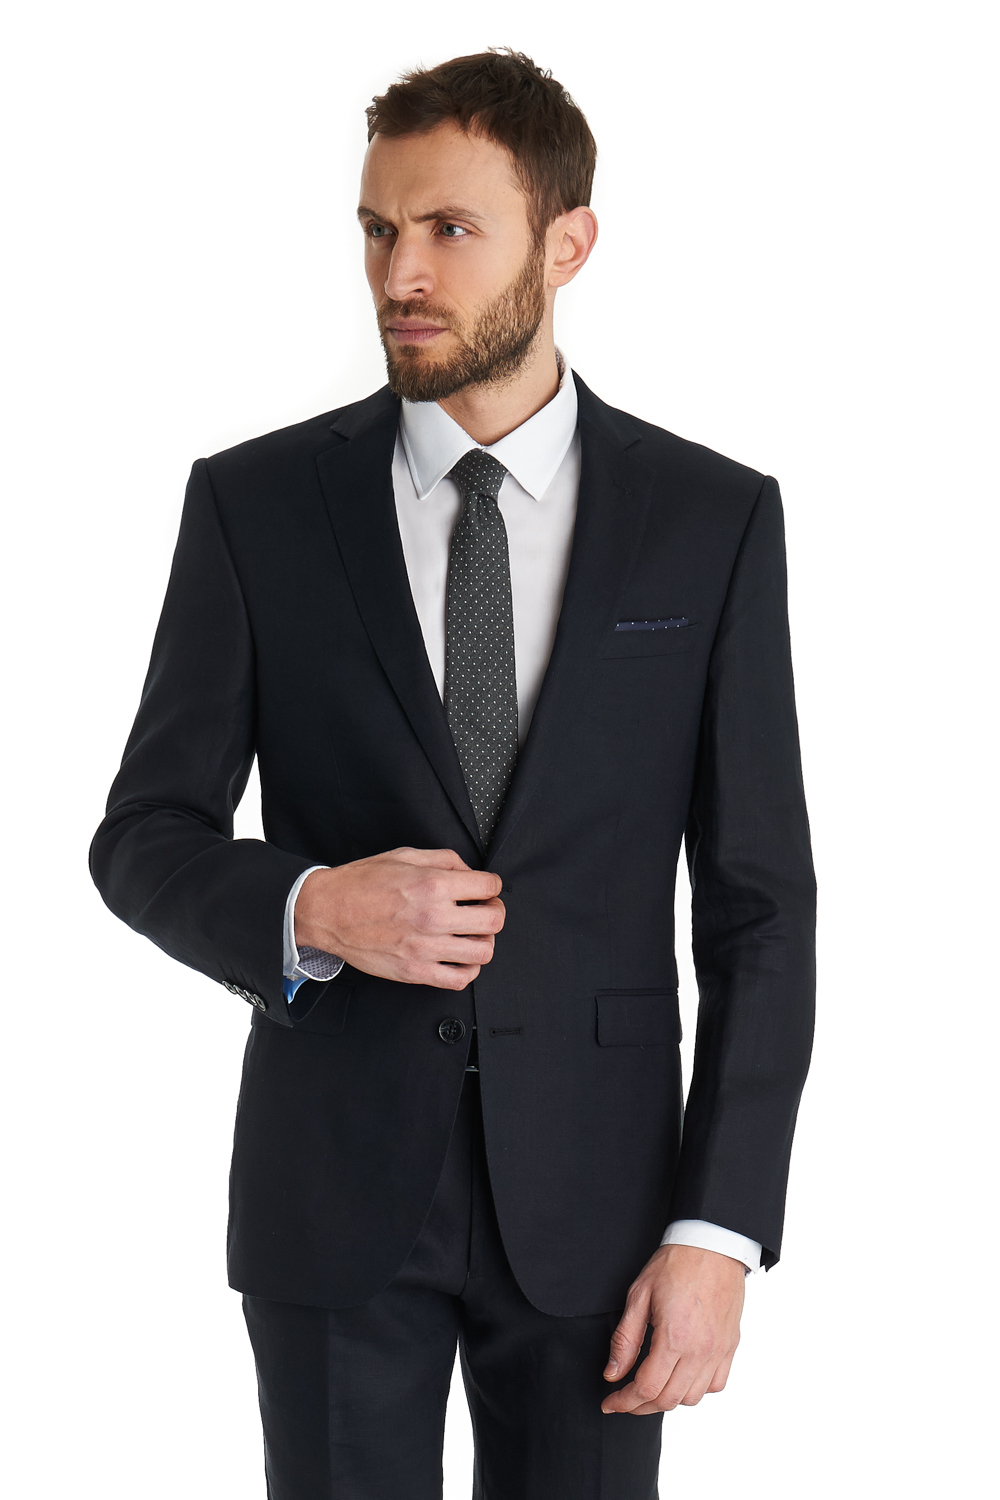 Black Suit To Wedding - Ocodea.com